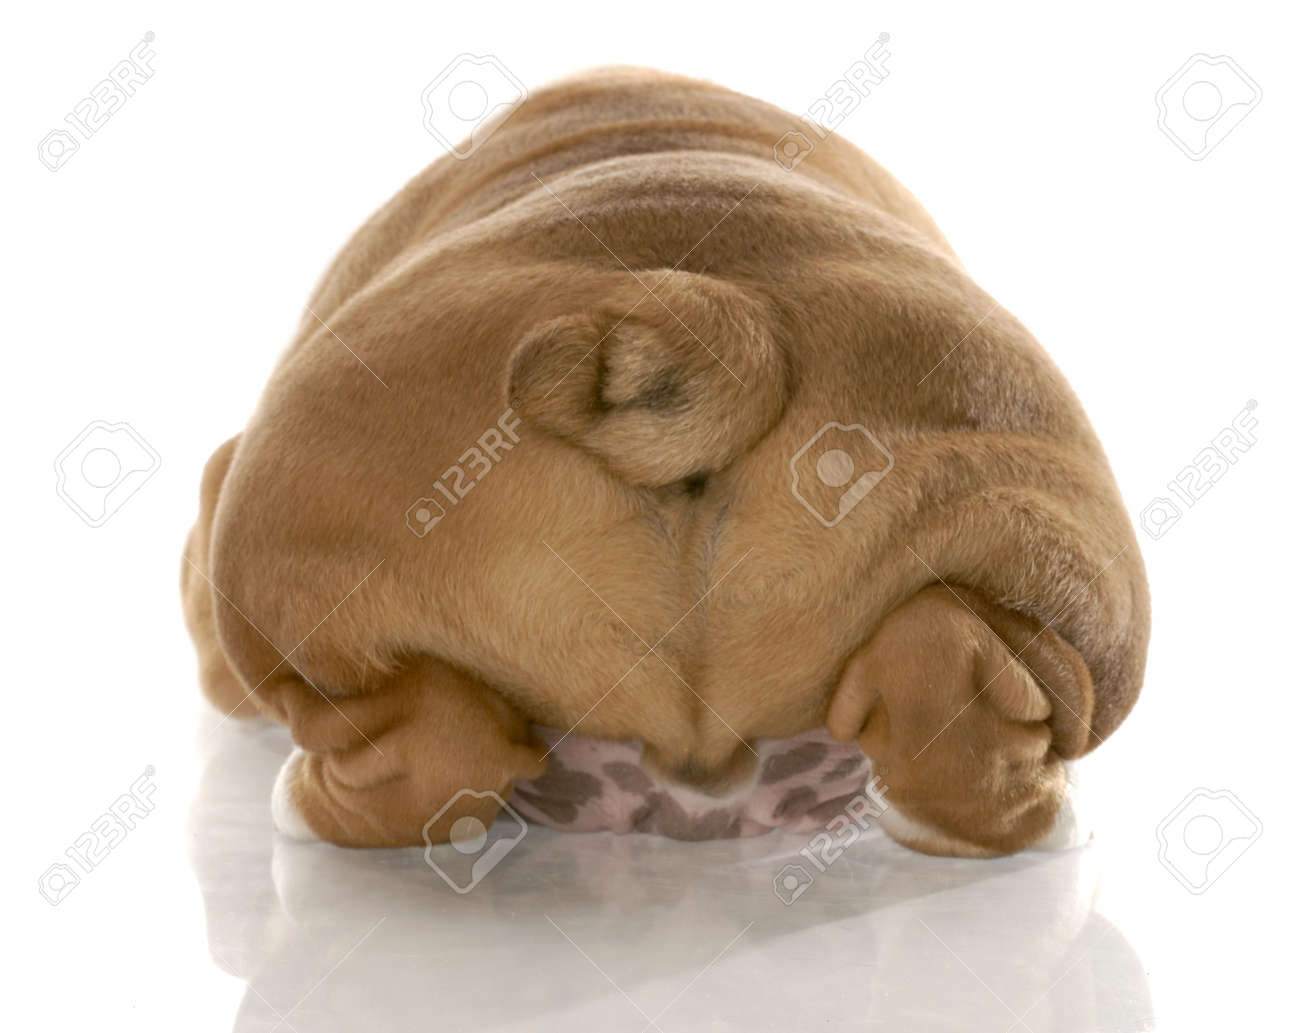 english bulldog puppy from the rear end with reflection on white background Stock Photo - 6564292